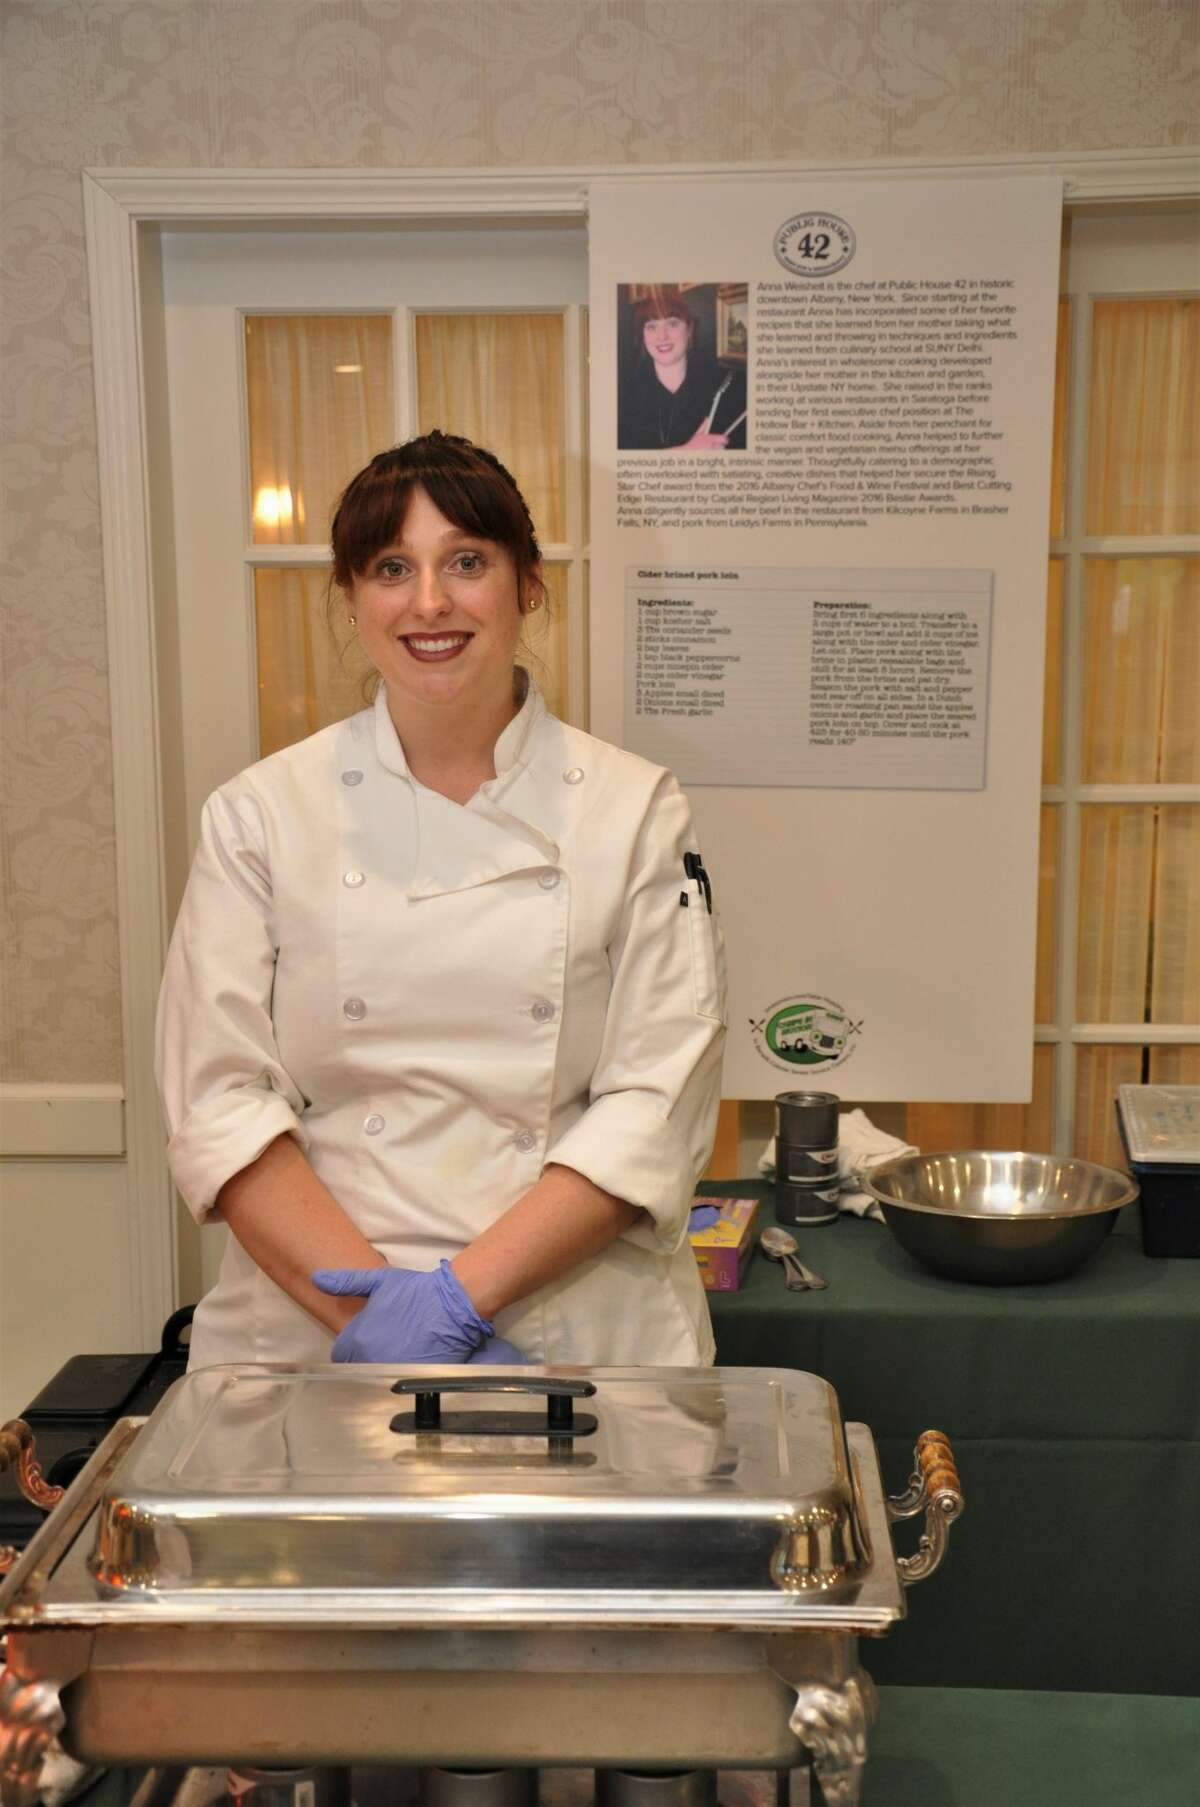 Were you Seen at Chefs in Motion, a culinary tasting and competition benefiting Colonie Senior Services Center, at the Beltrone Living Center in Colonie on June 10, 2019? Pictured: Chef Anna Weisheit from Public House 42.